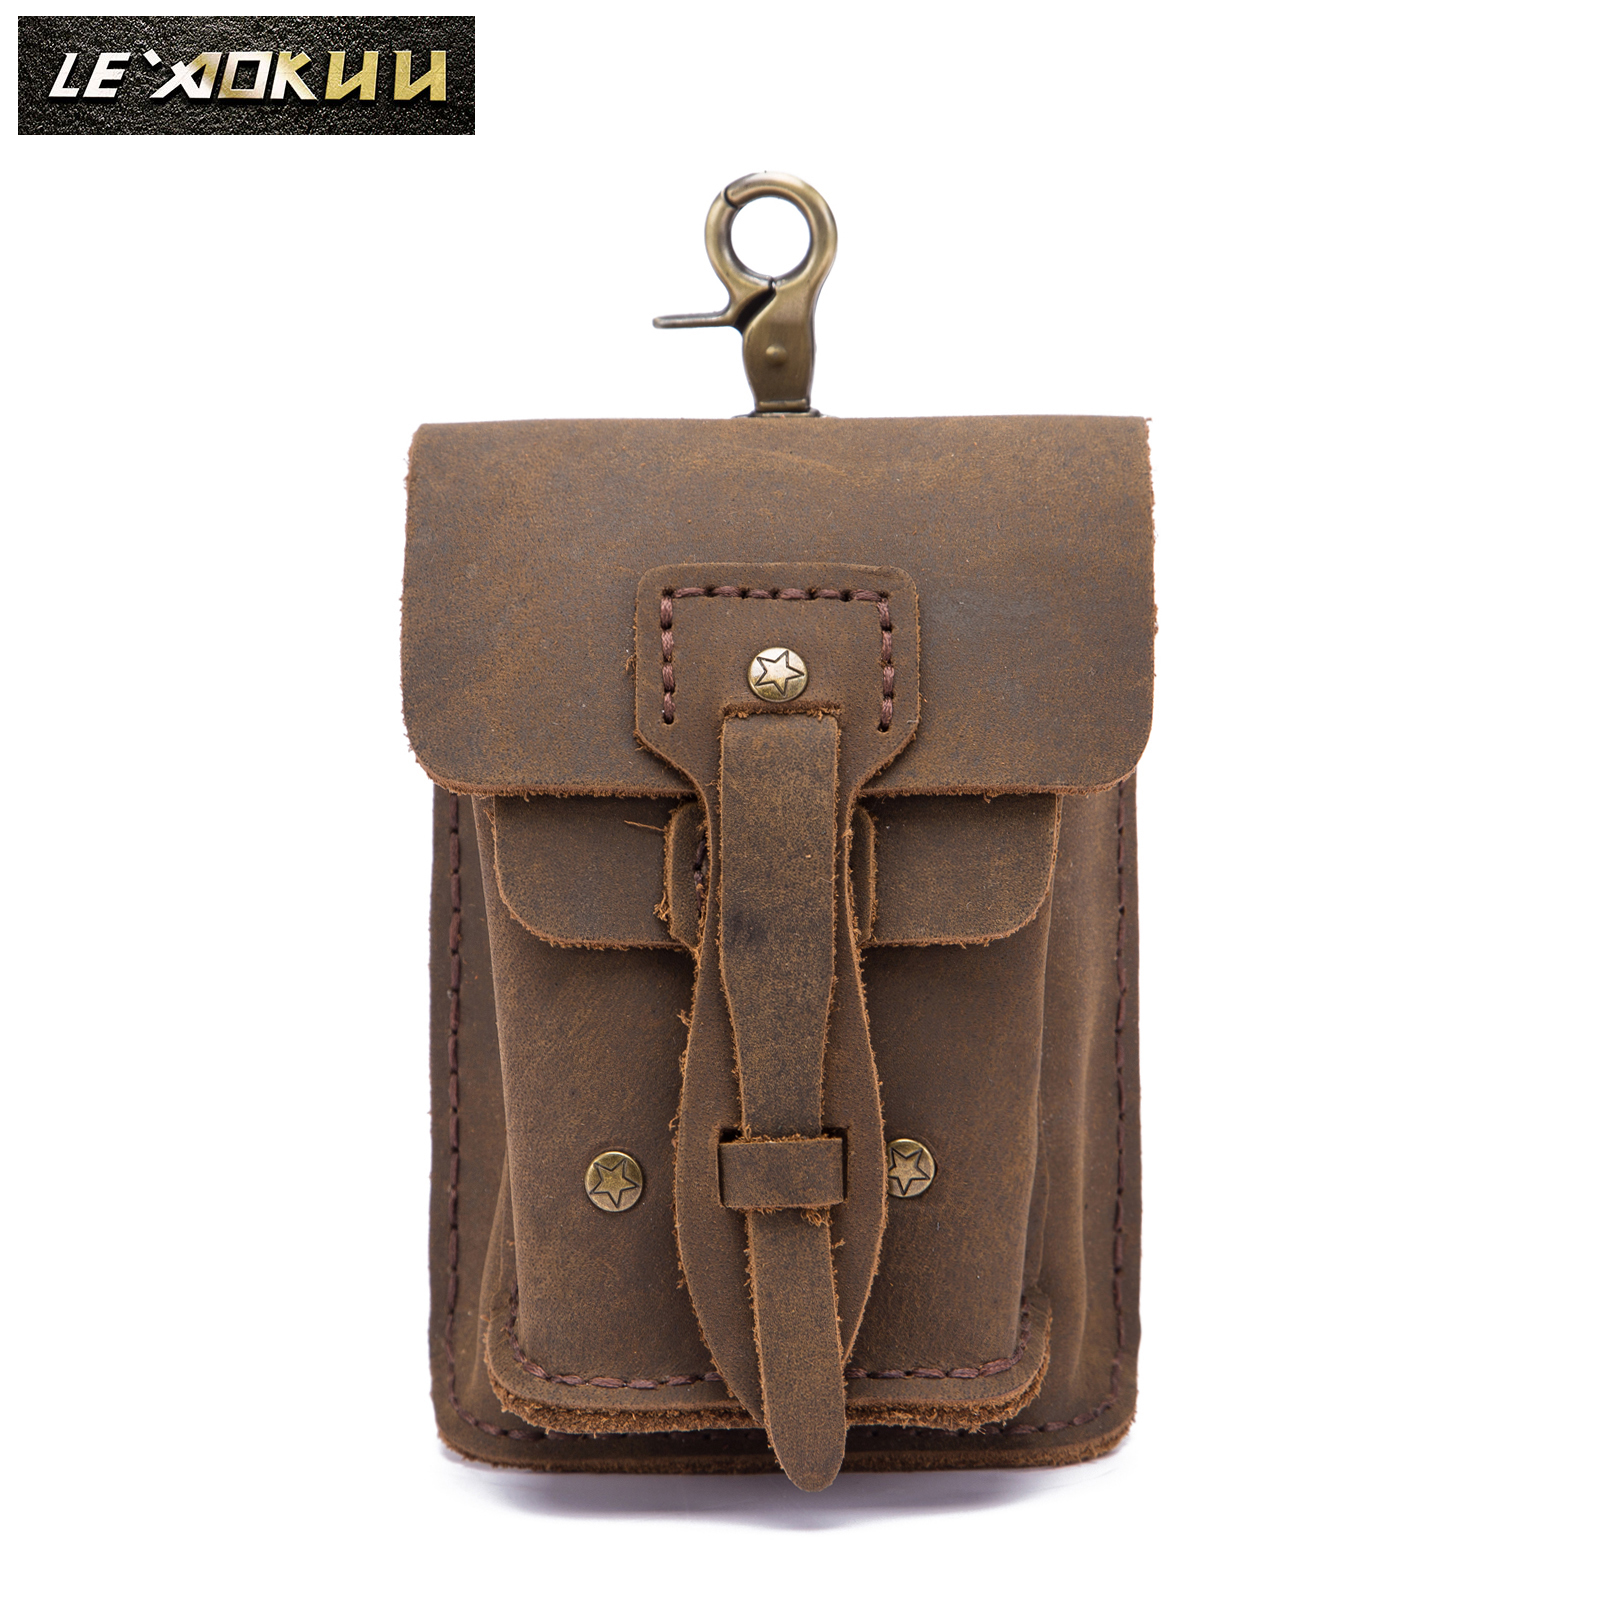 Fashion Quality Leather Small Summer Pouch Hook Design Waist Pack Bag Cigarette Case 5